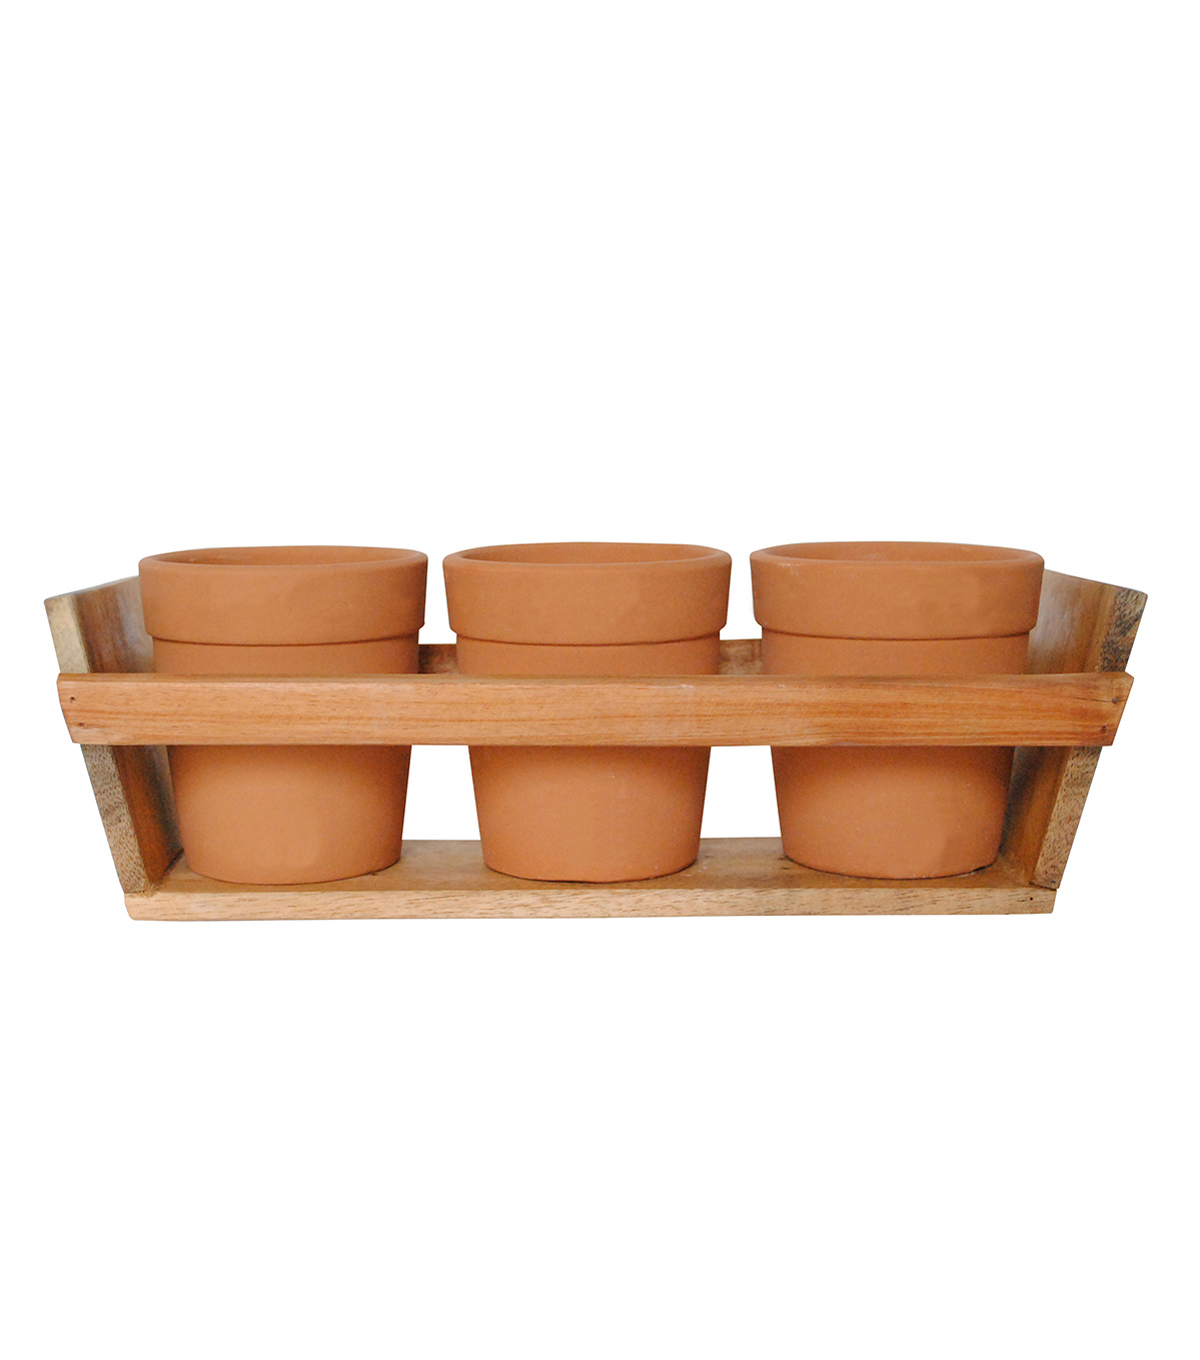 Bloom Room 3ct 5\u0027\u0027 Tall Clay Pots With Wood Tray-Orange